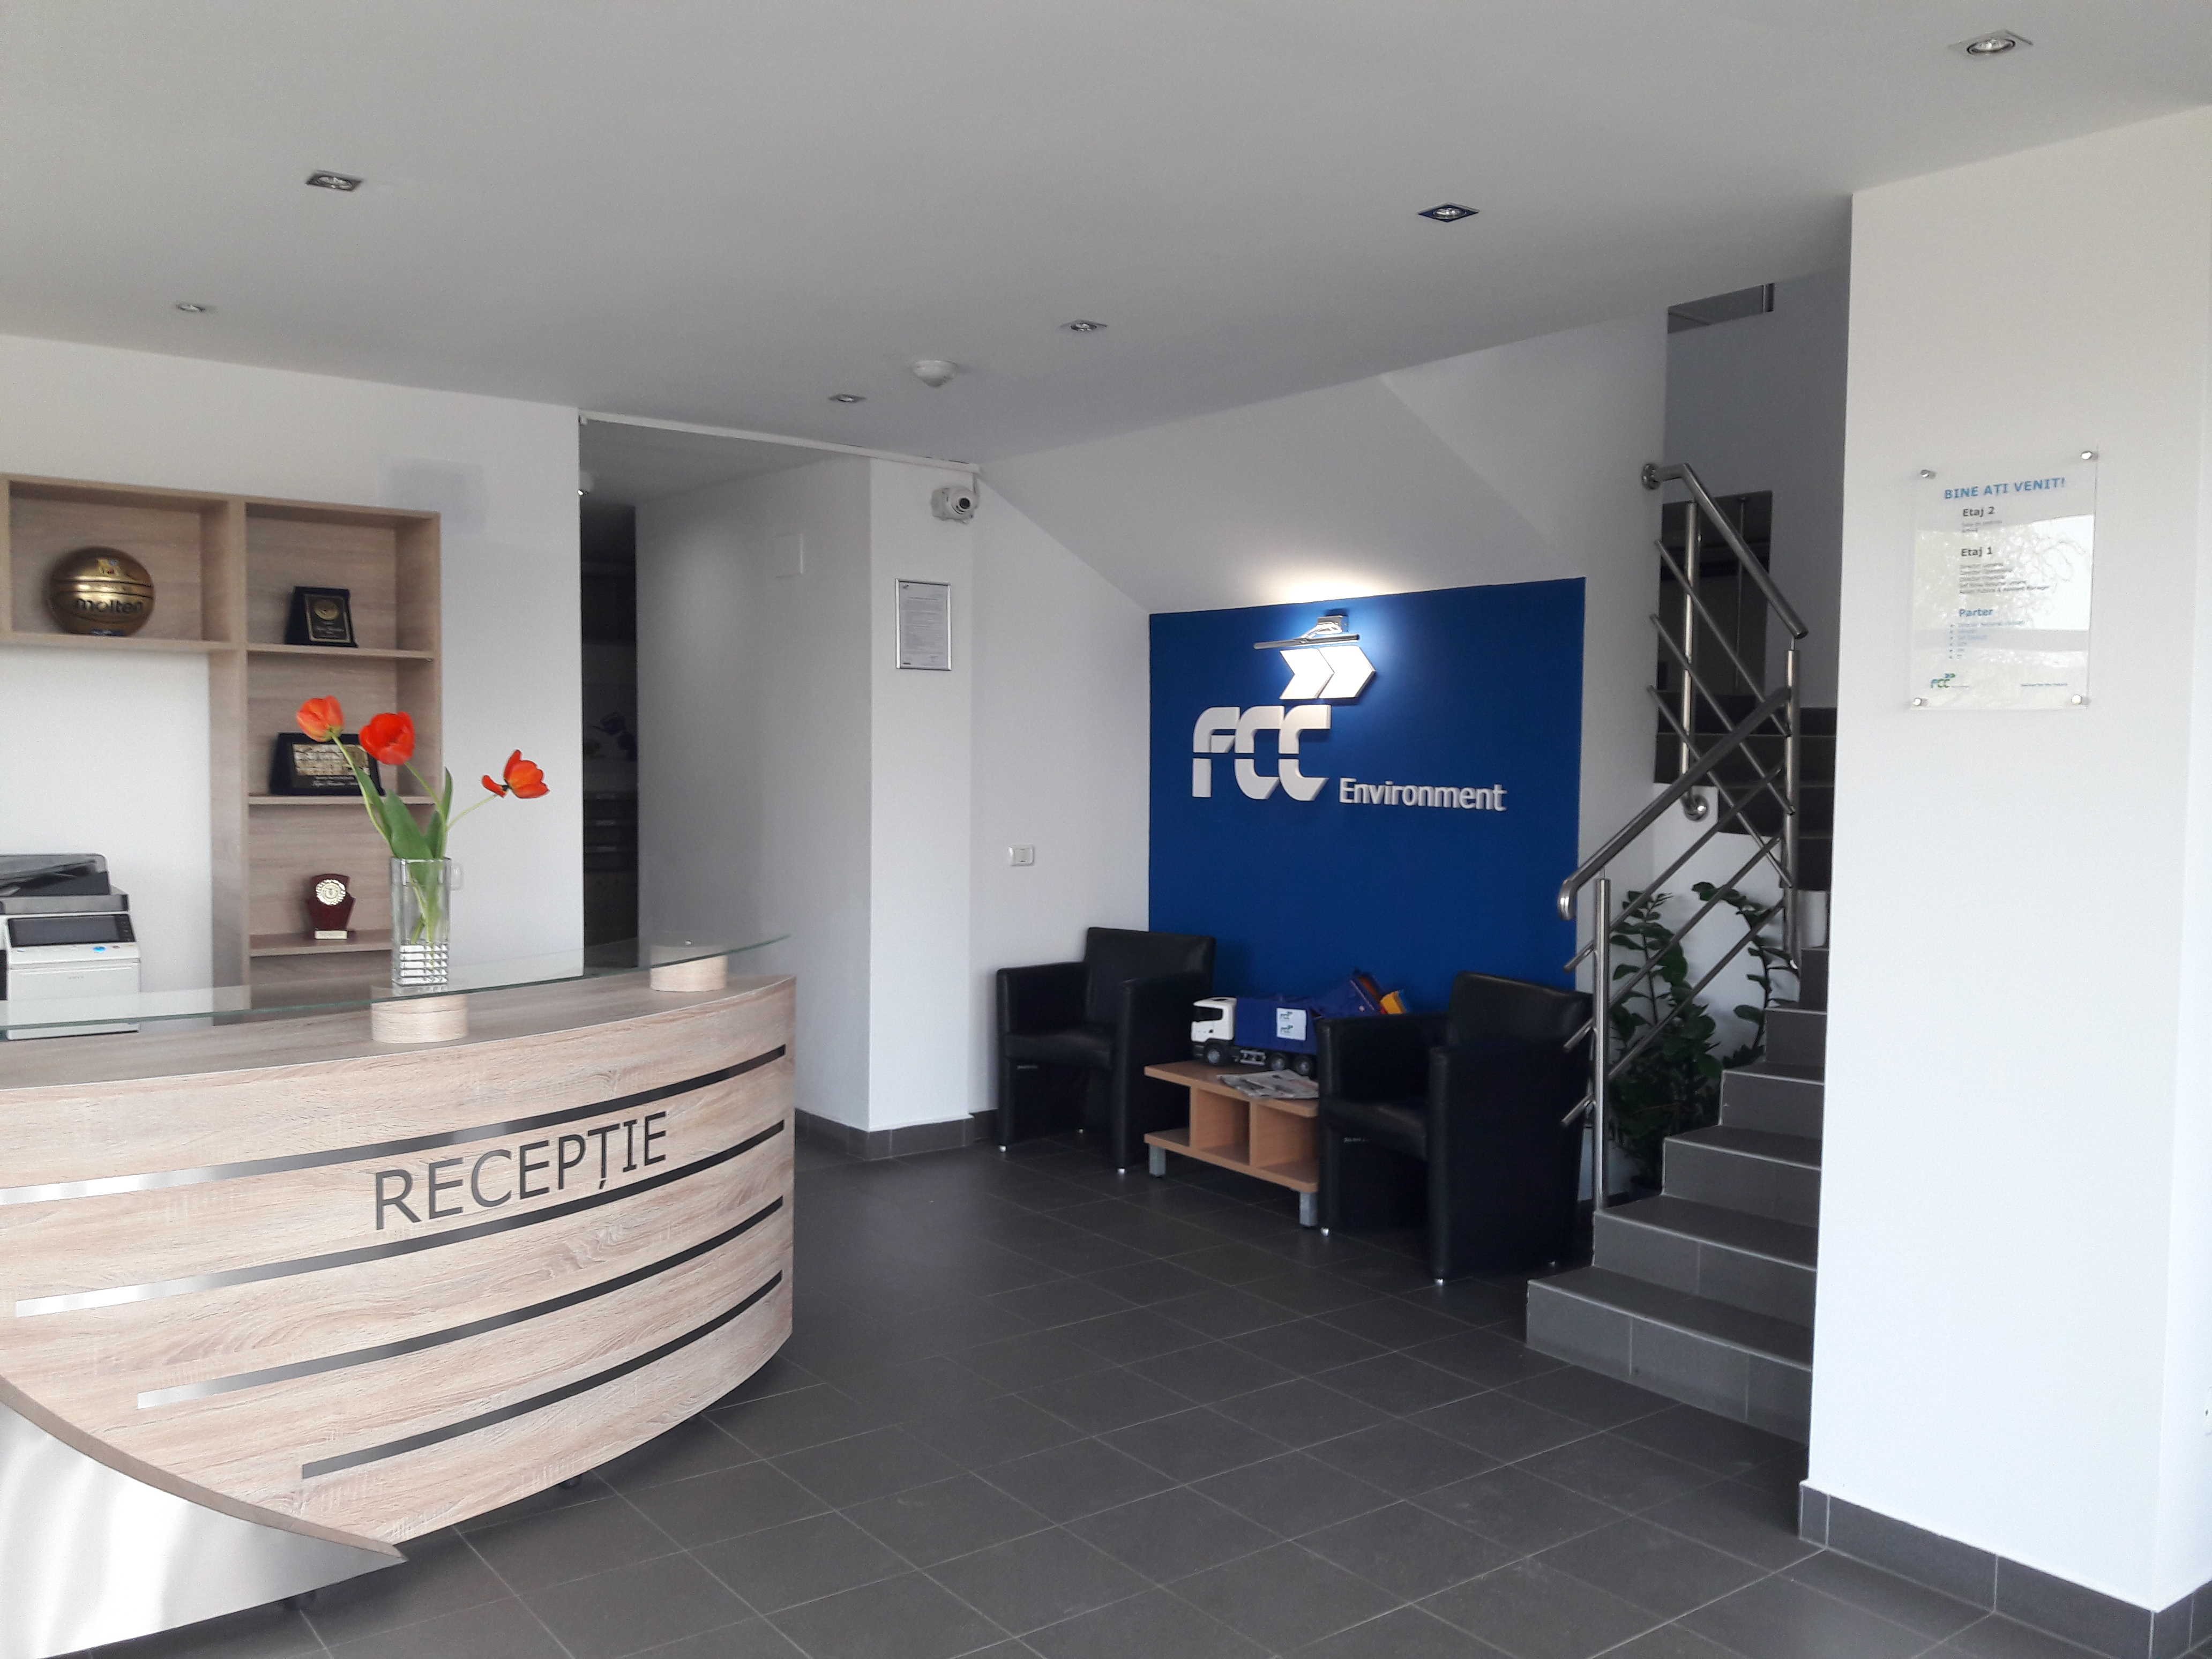 fcc environment romania a better place to work